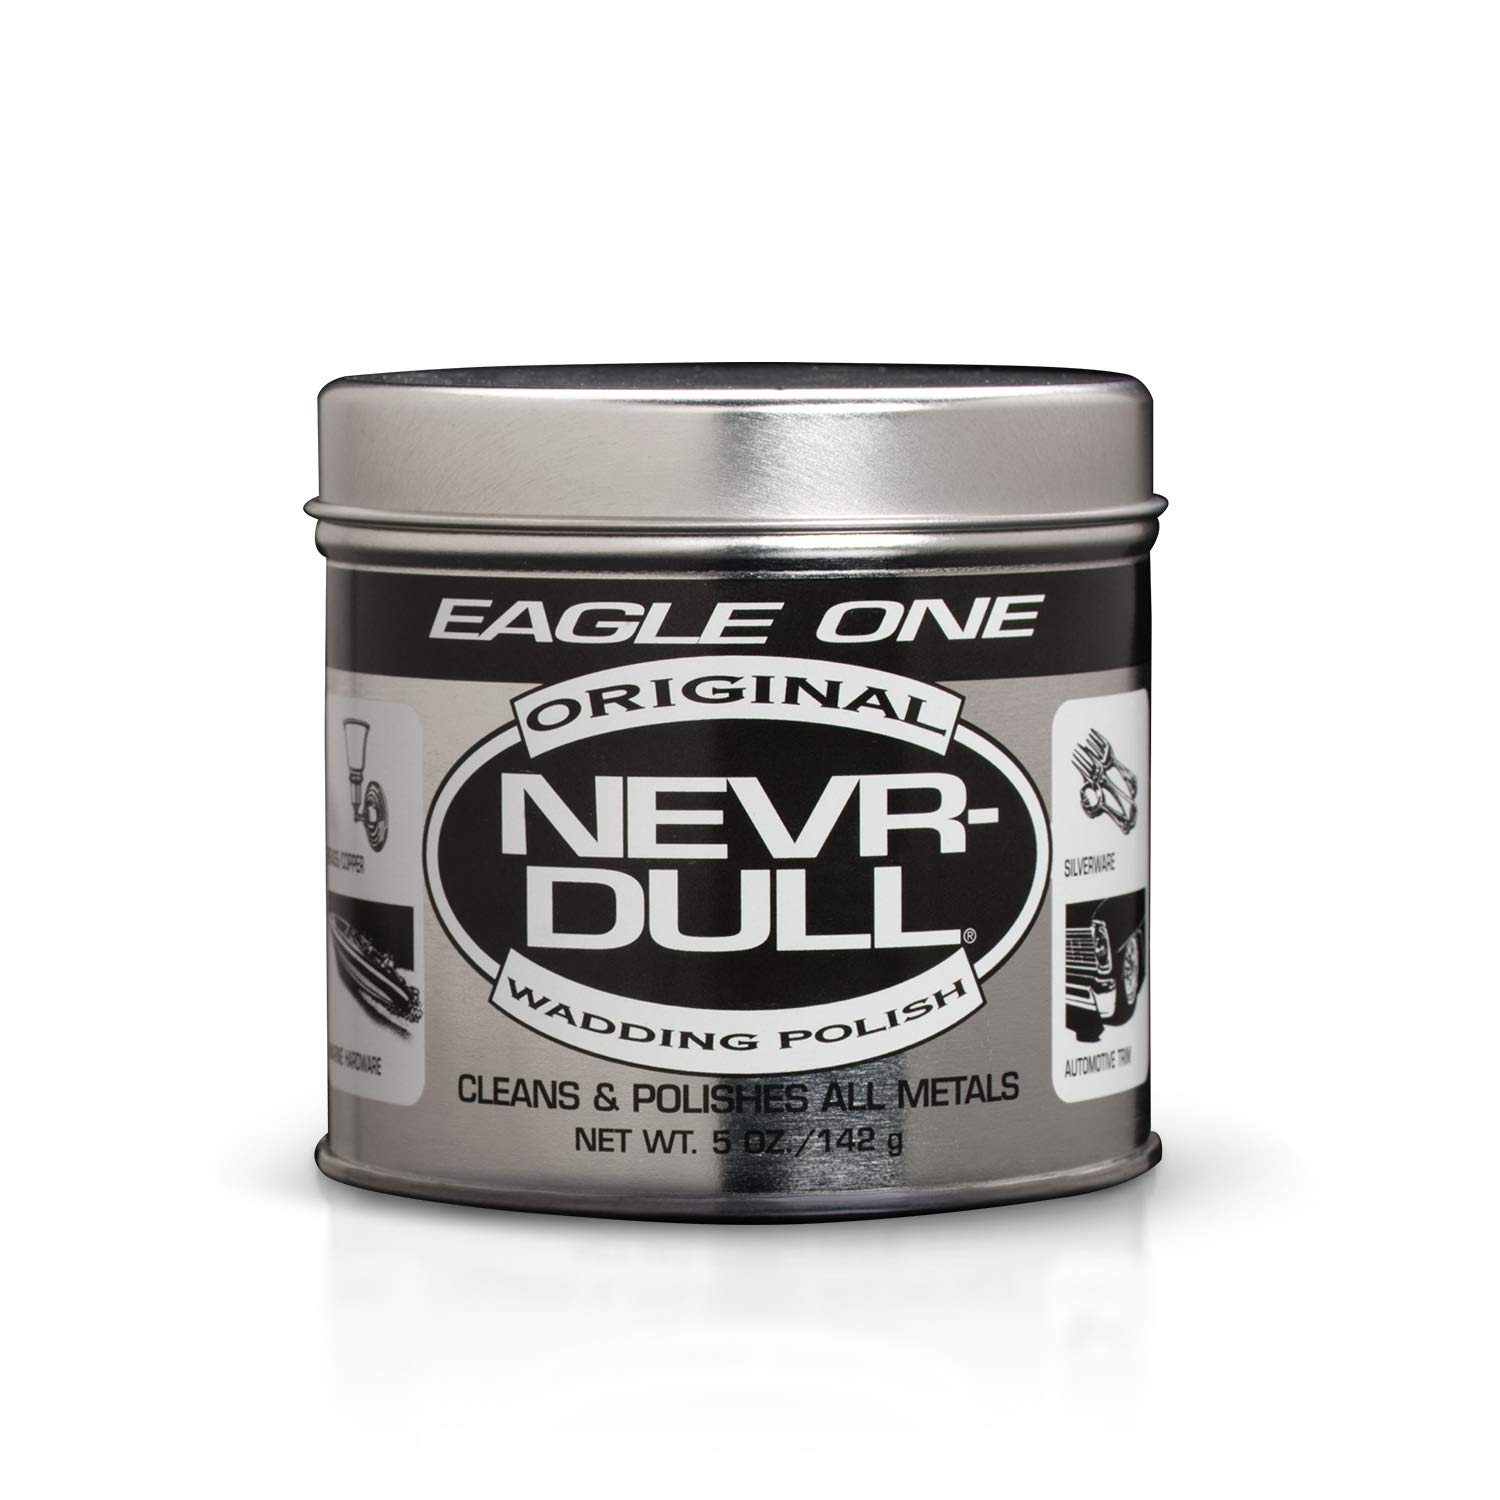 Nevr Dull Wadding Polish - Eagle One